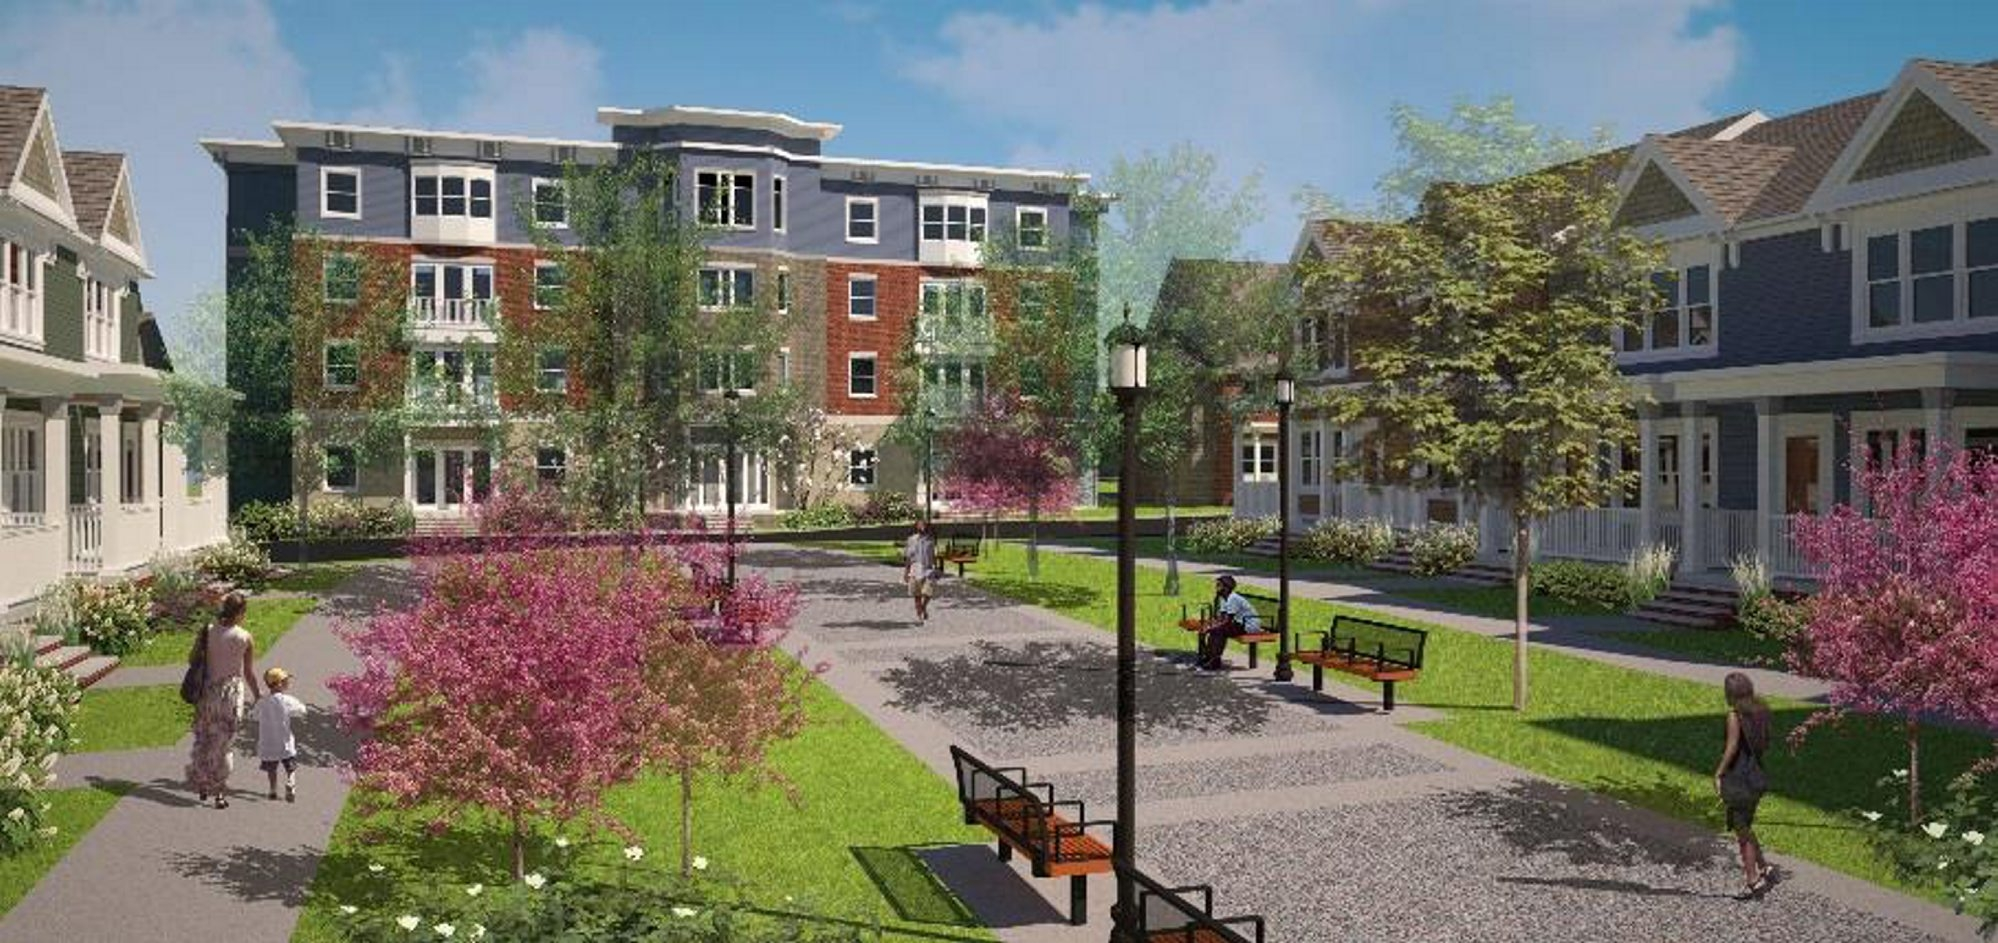 A rendering of the development planned for the Central Park plaza in the Fillmore/Leroy Neighborhood.